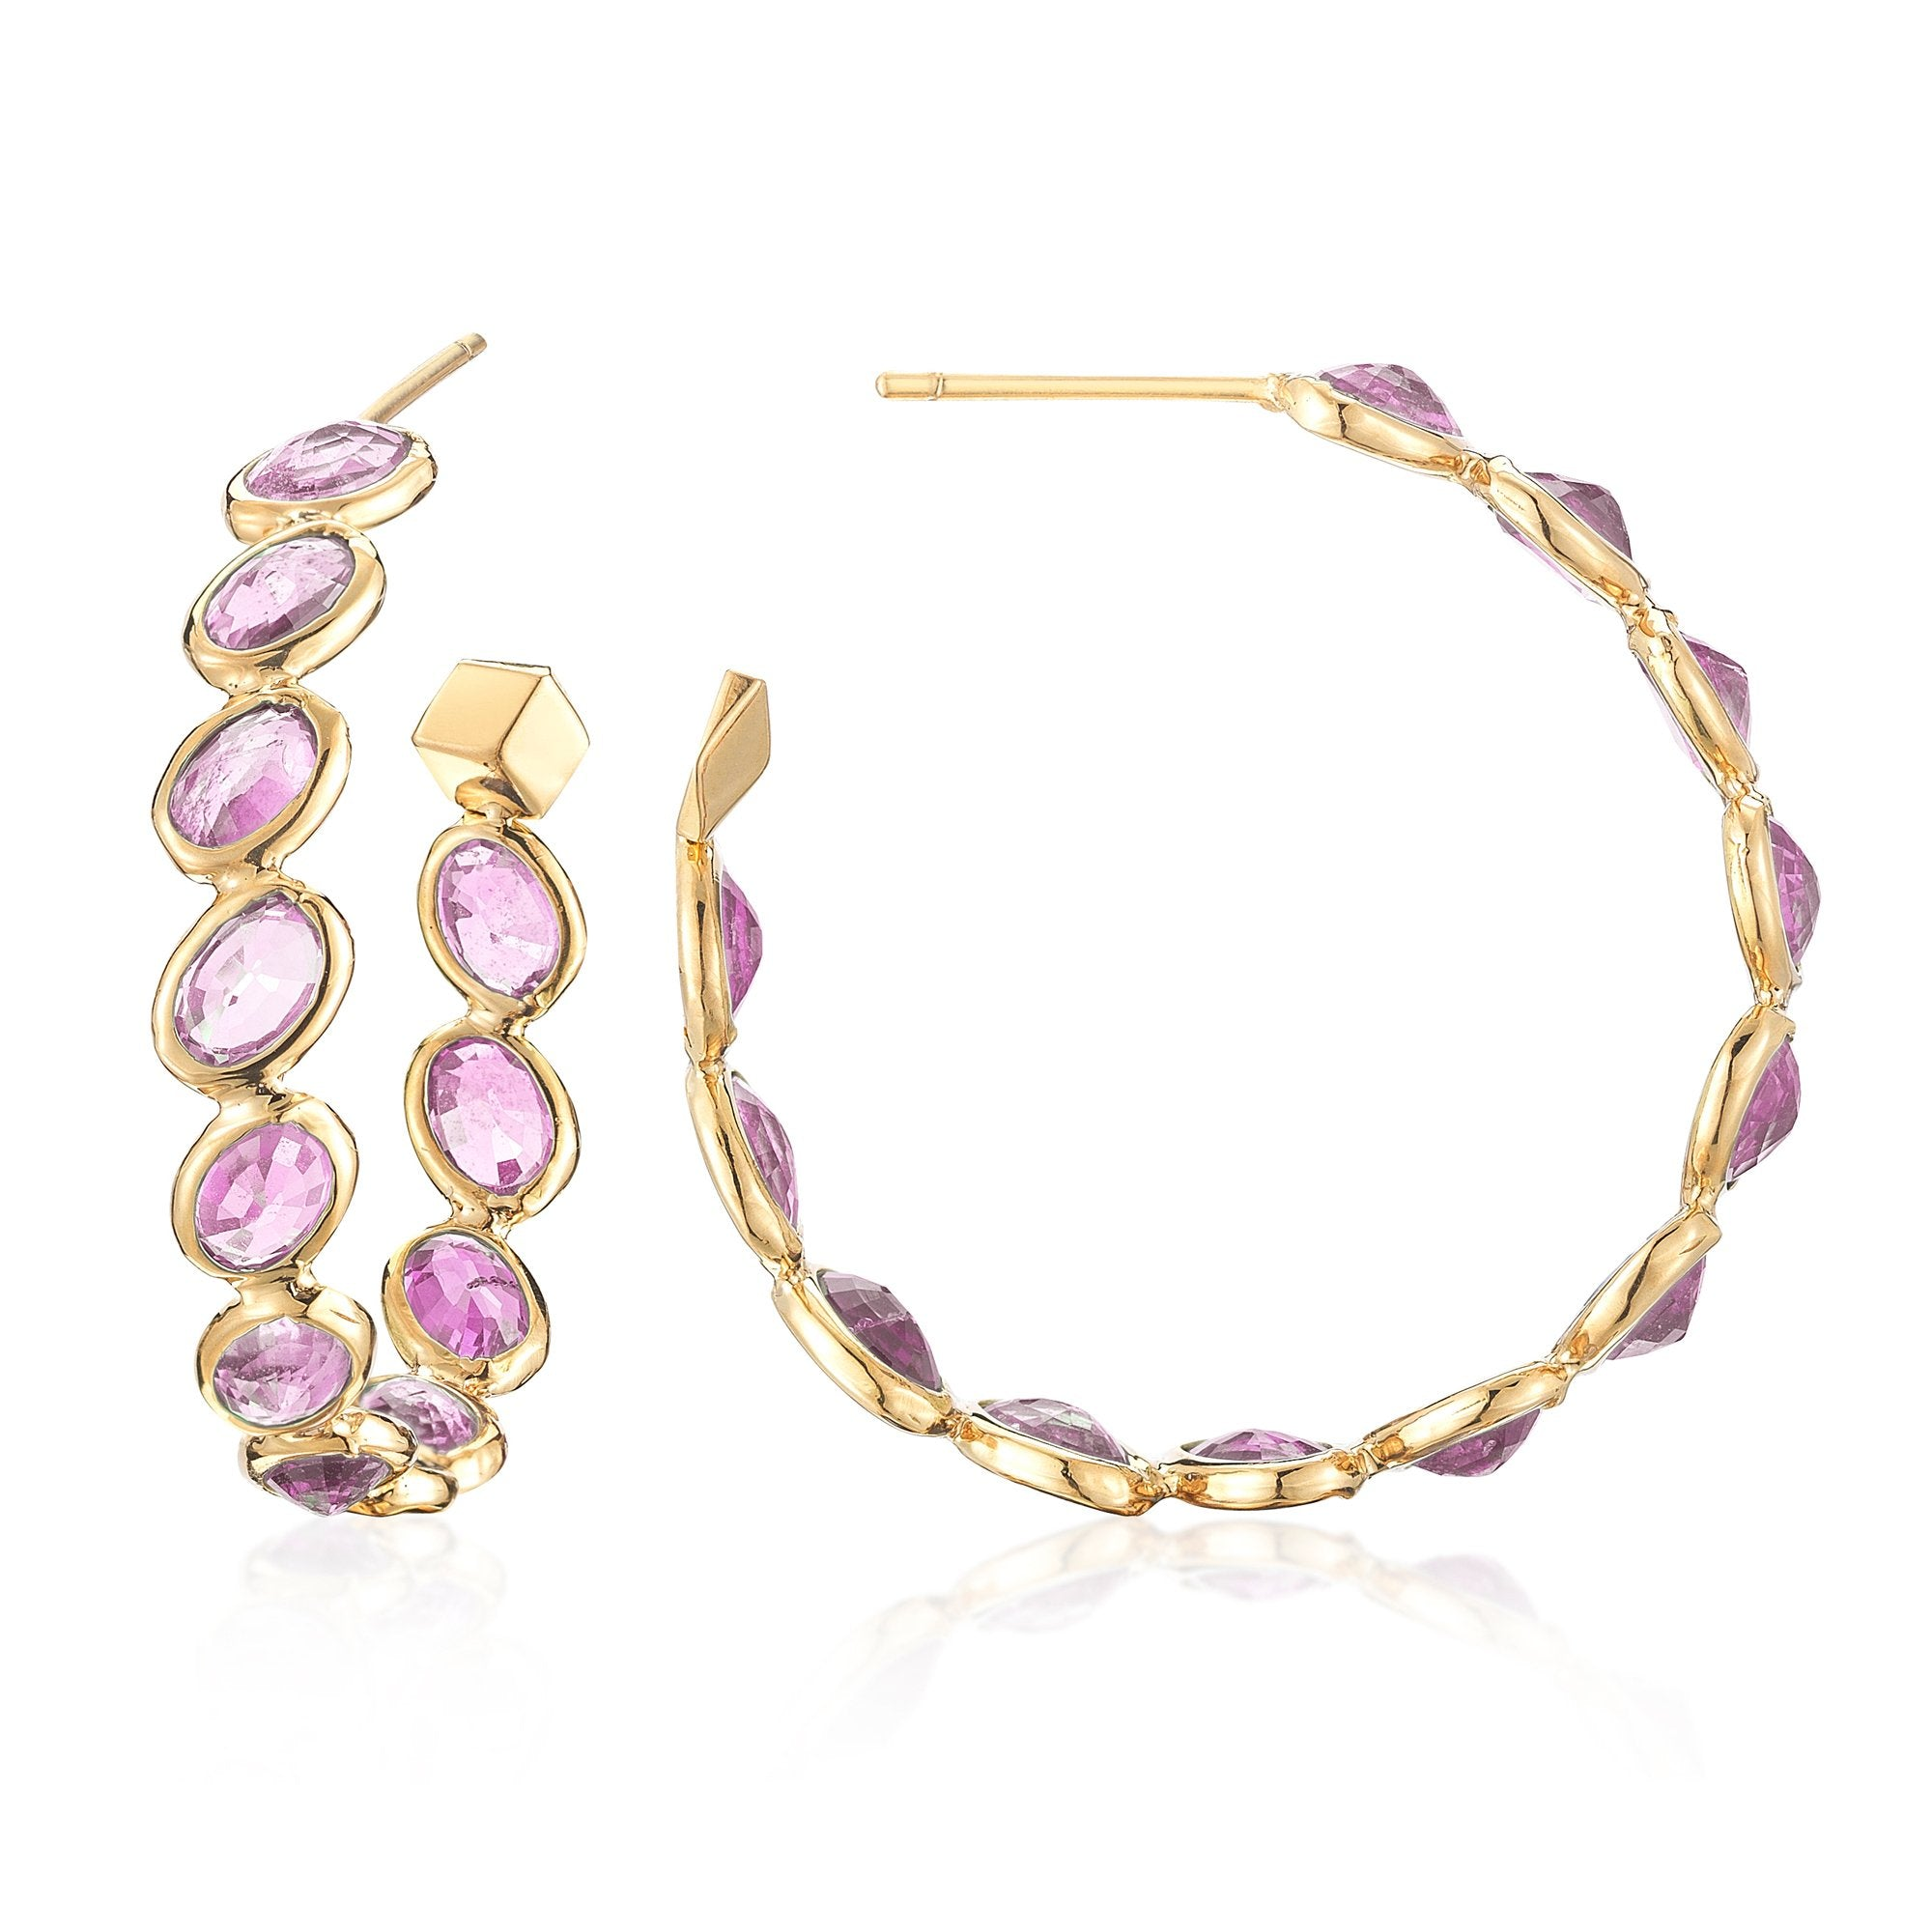 Pink Sapphire 'Ombre' Hoop Earrings, Medium - Paolo Costagli - 1